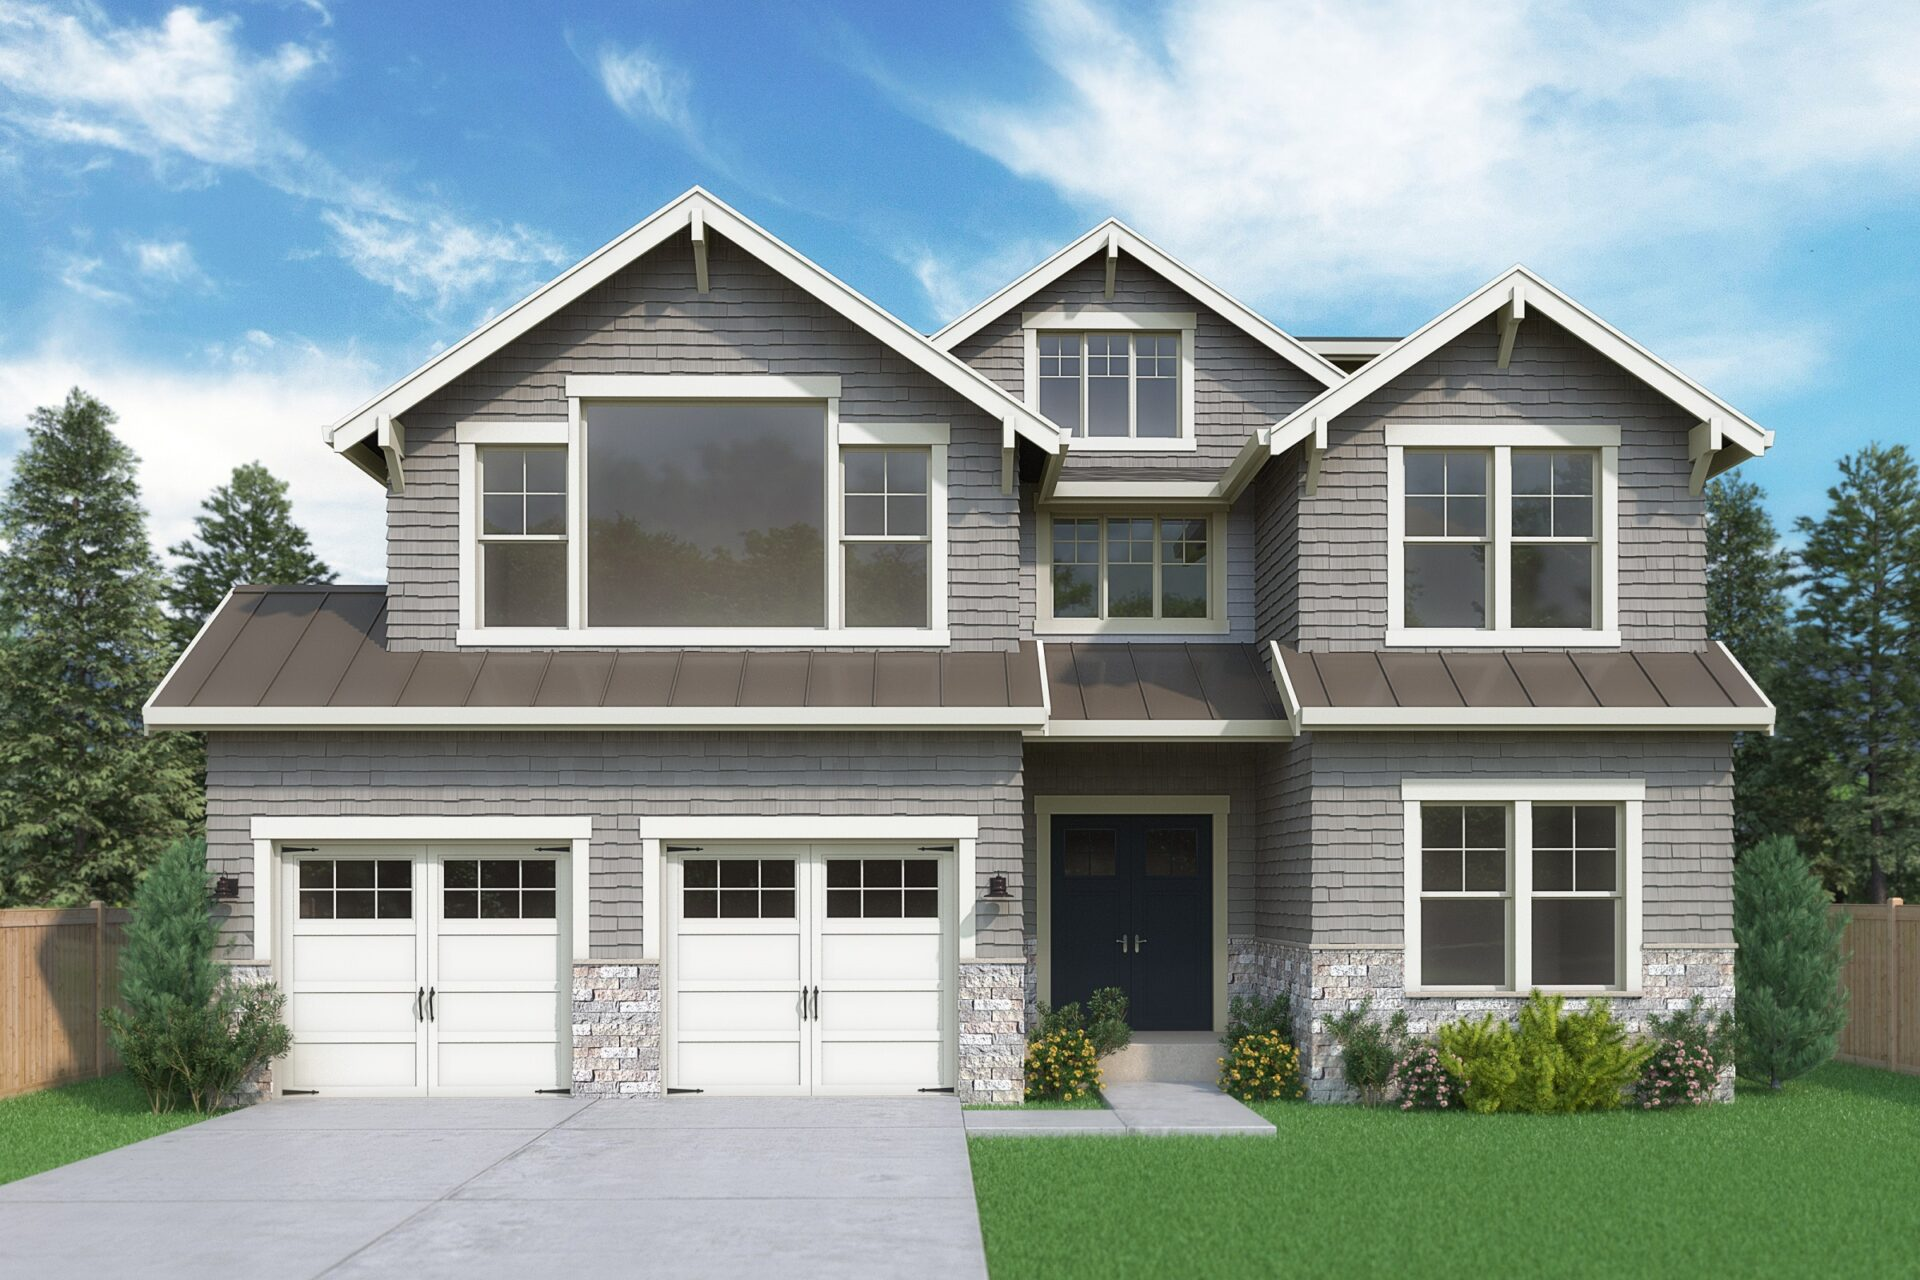 View our new luxury home construction on 1709 99th Ave NE, in Bellevue, WA from MN Custom Homes